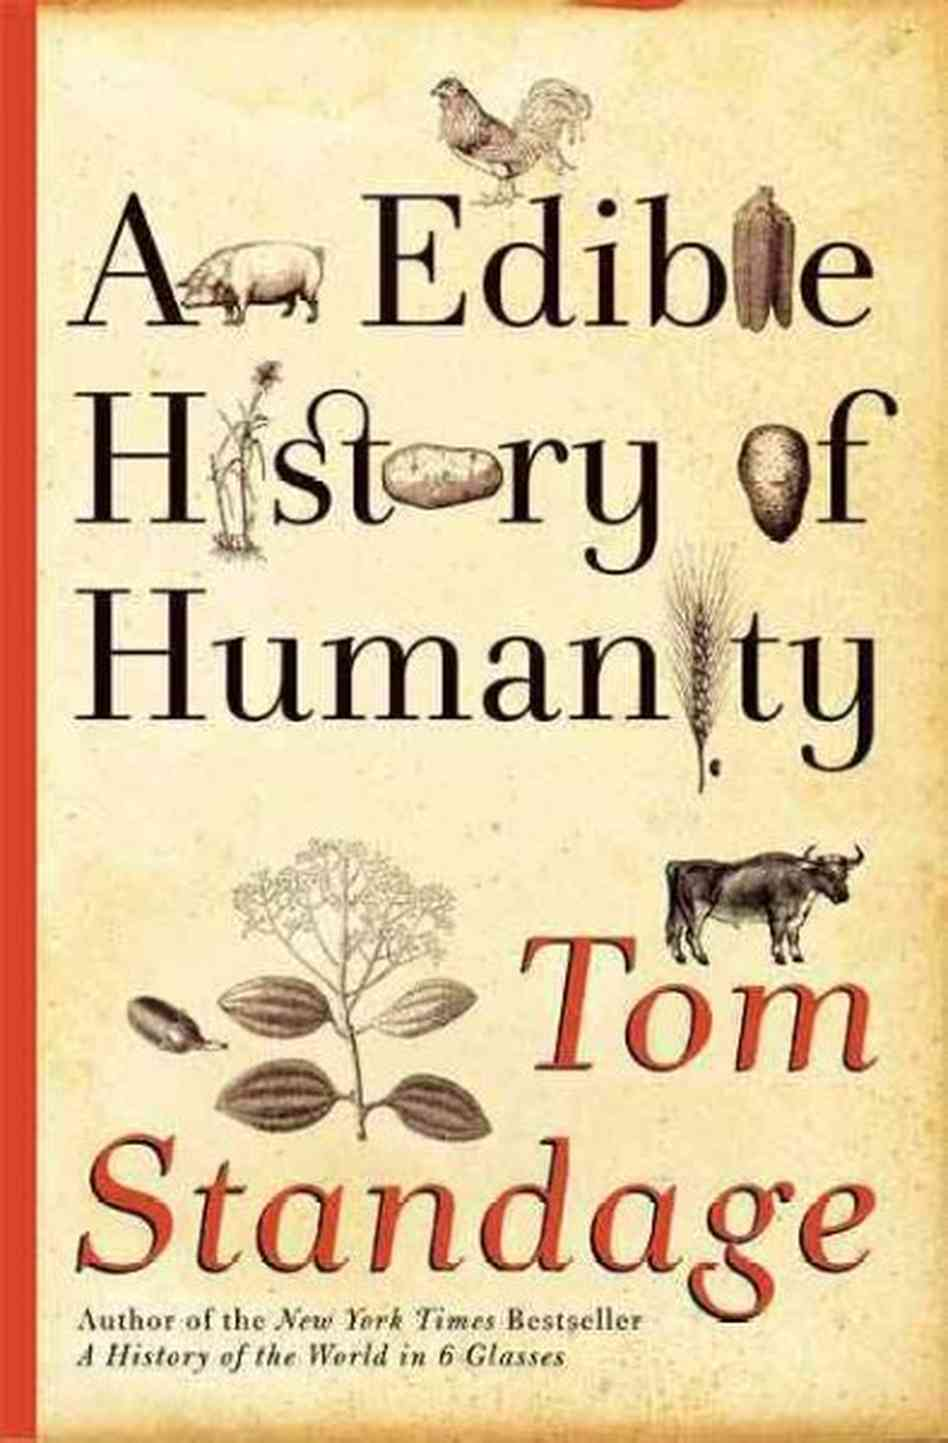 Population Essay In English Book Review  An Edible History Of Humanity By Tom Standage Contributor   Publius Online Controversial Essay Topics For Research Paper also Persuasive Essay Topics High School Students Book Review  An Edible History Of Humanity By Tom Standage  Short Essays For High School Students